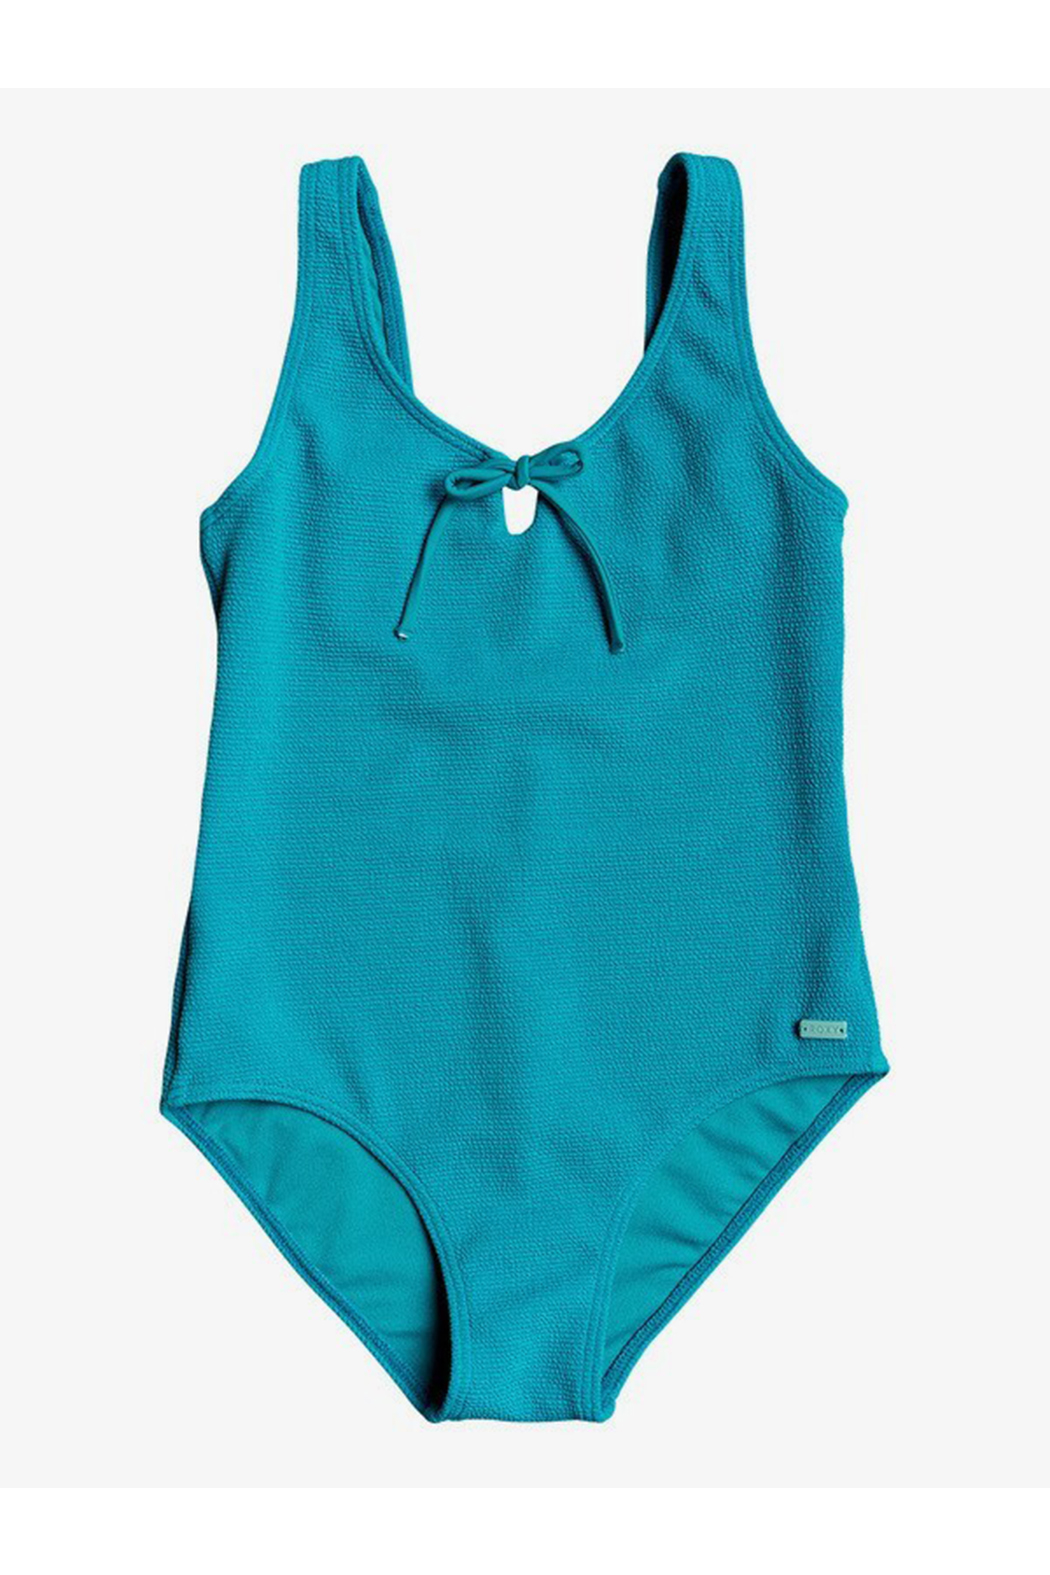 Roxy Sandy Forever One-Piece Swimsuit - Main Image